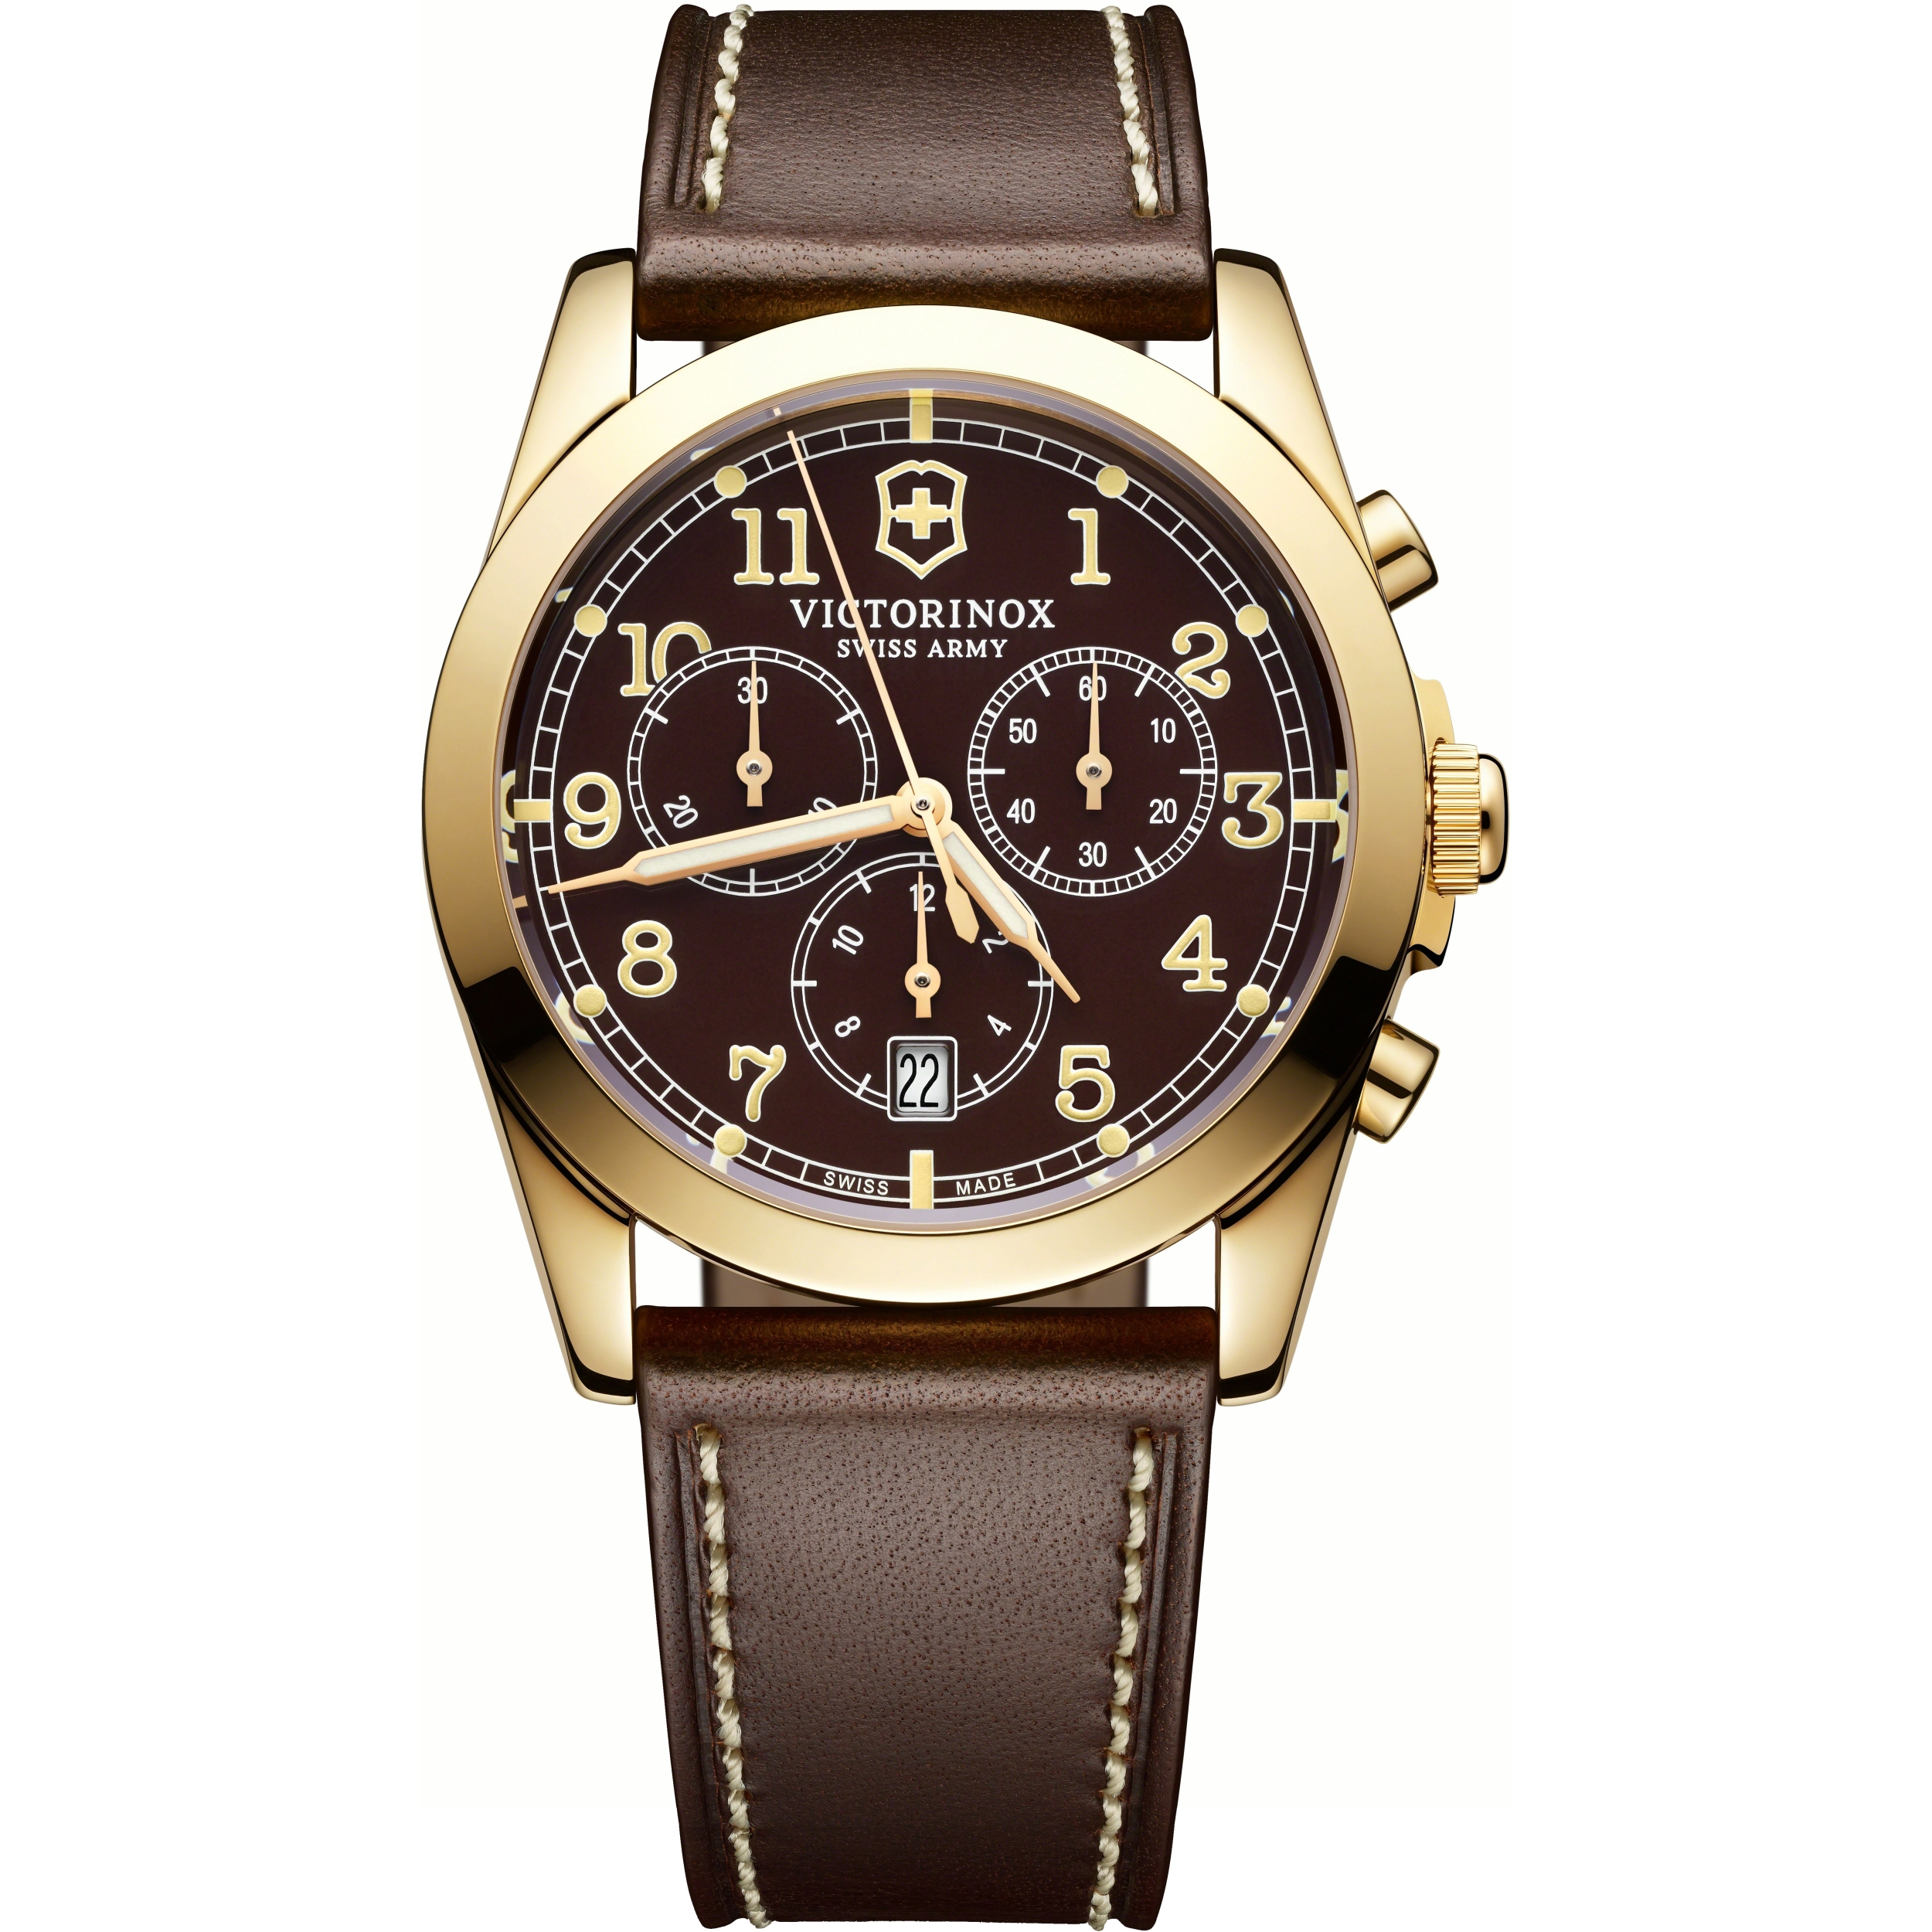 chrono swiss army leather s shipping quartz men classic mens today gold watch strap watches free brown jewelry overstock product dial